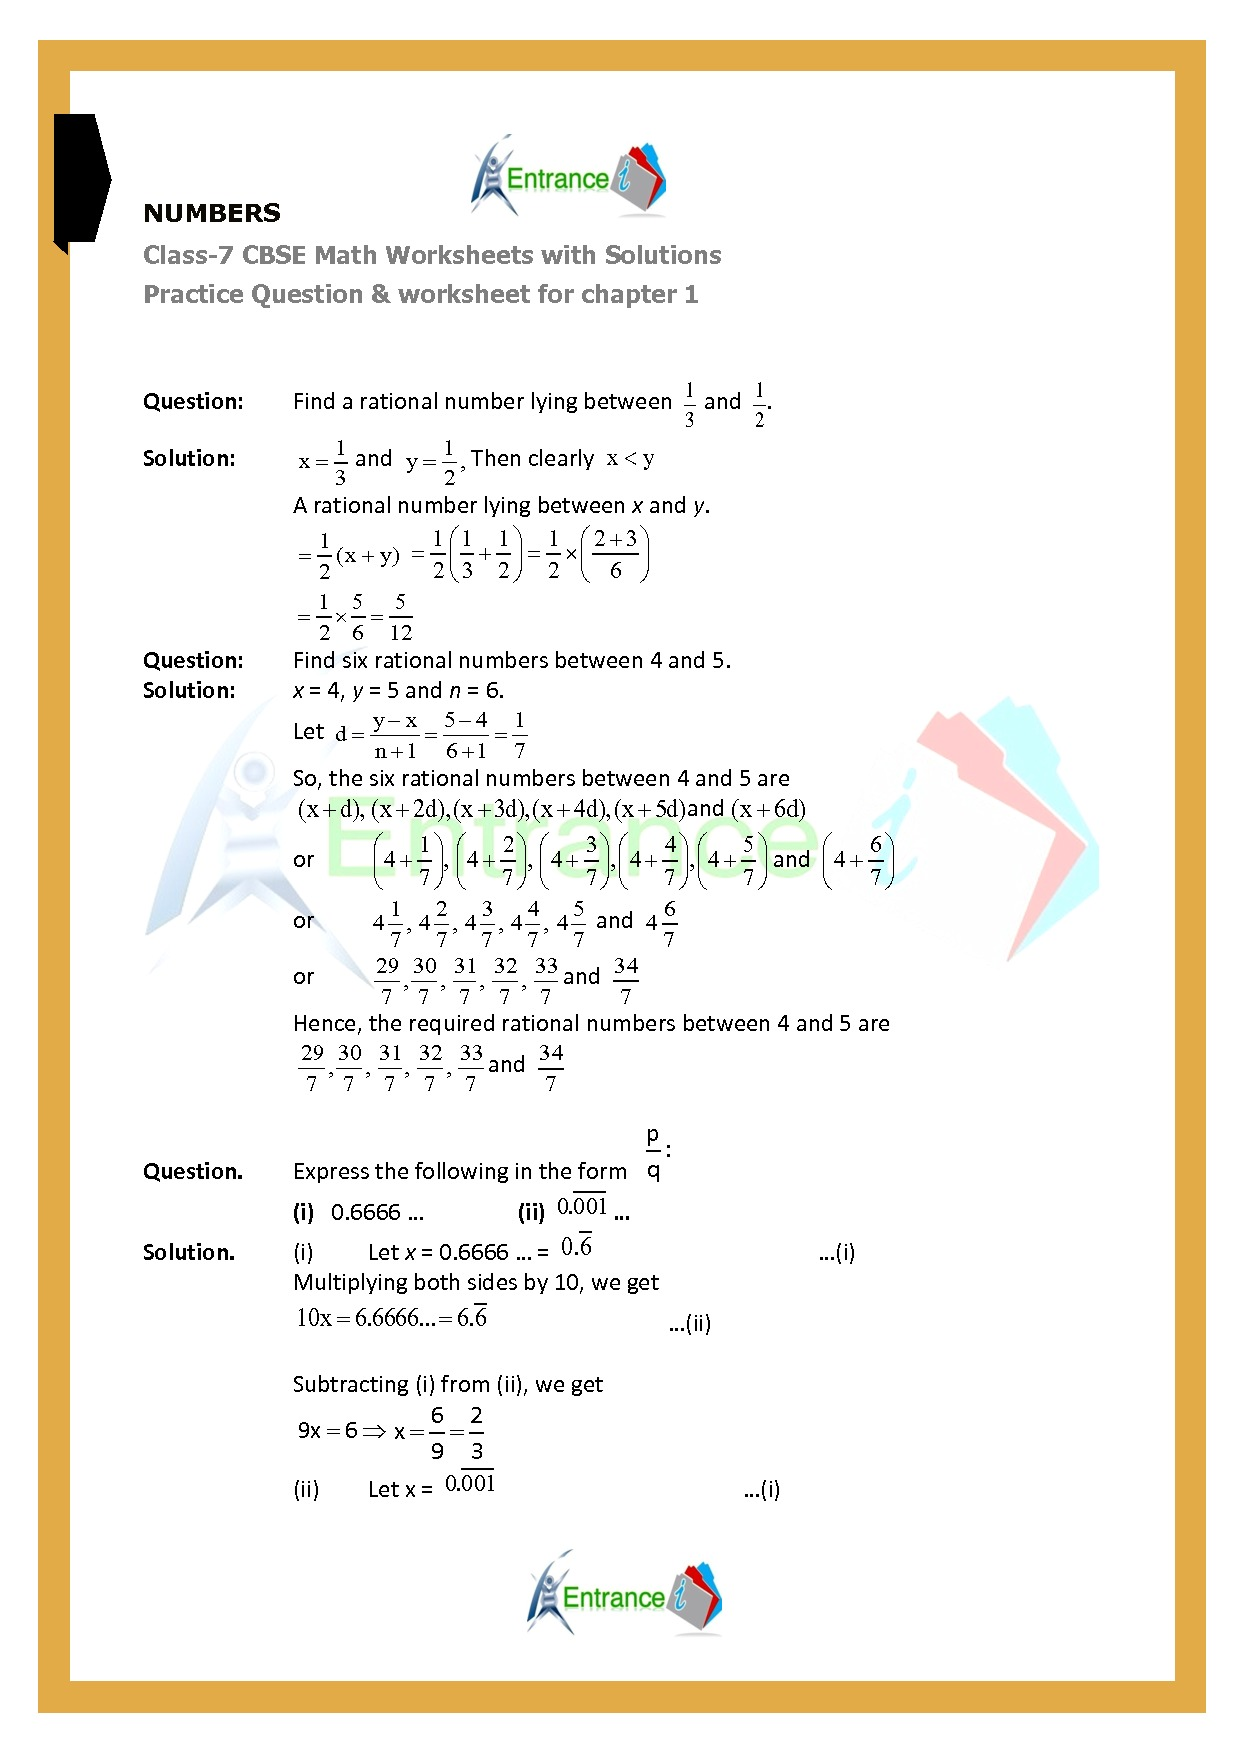 Worksheet For Class 7 Maths For Chapter 1 Number System